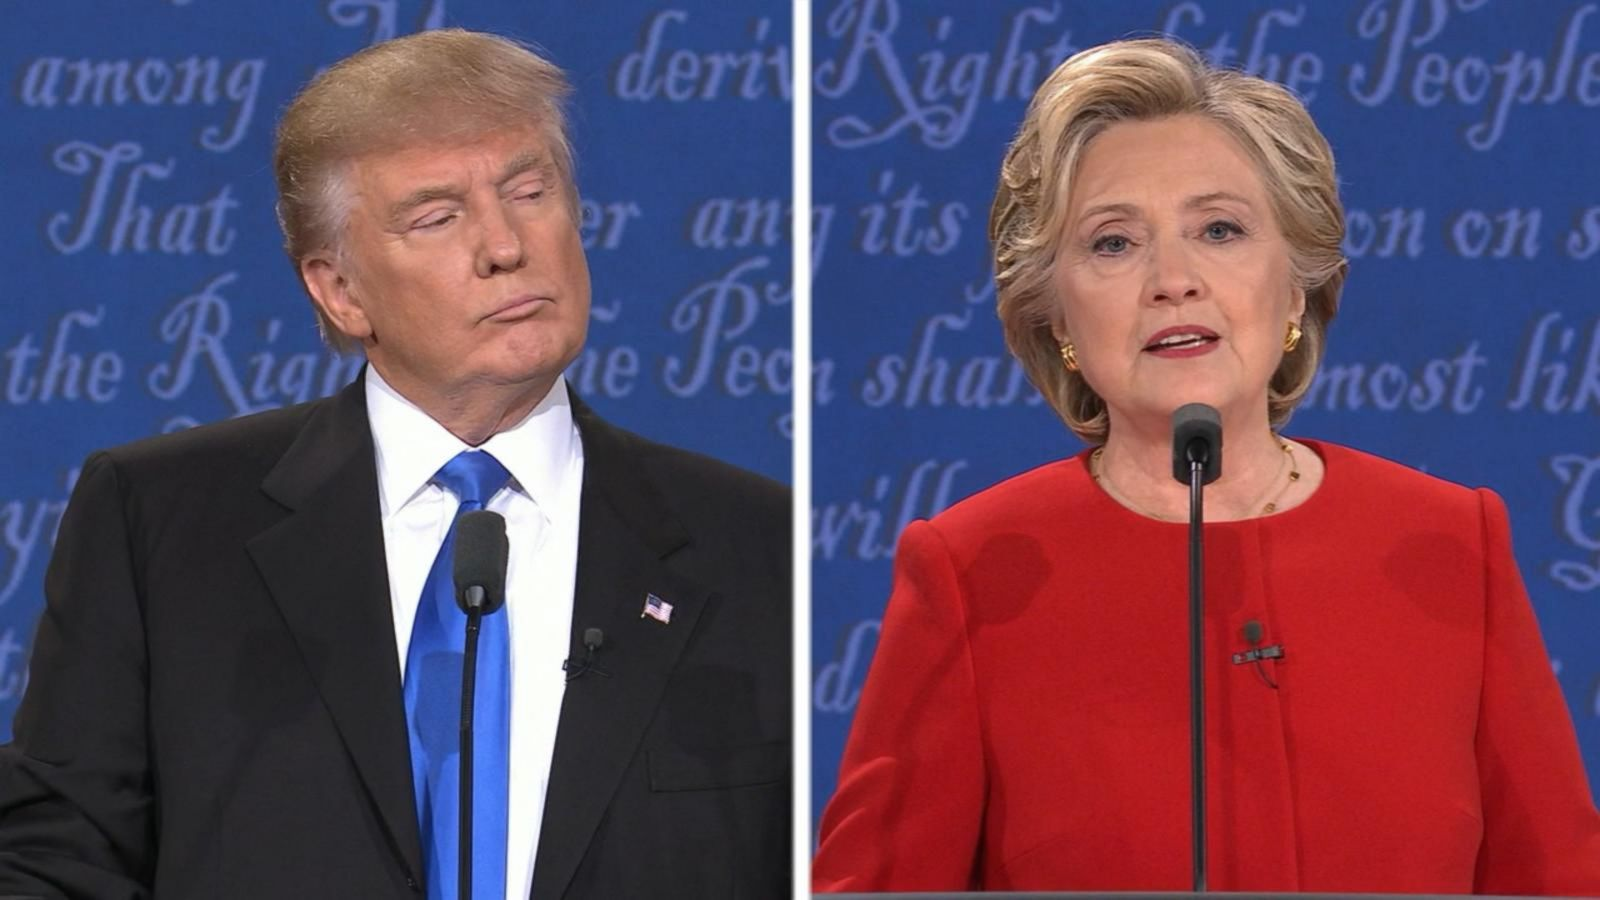 VIDEO: Clinton, Trump Debate Cybersecurity, Hacks